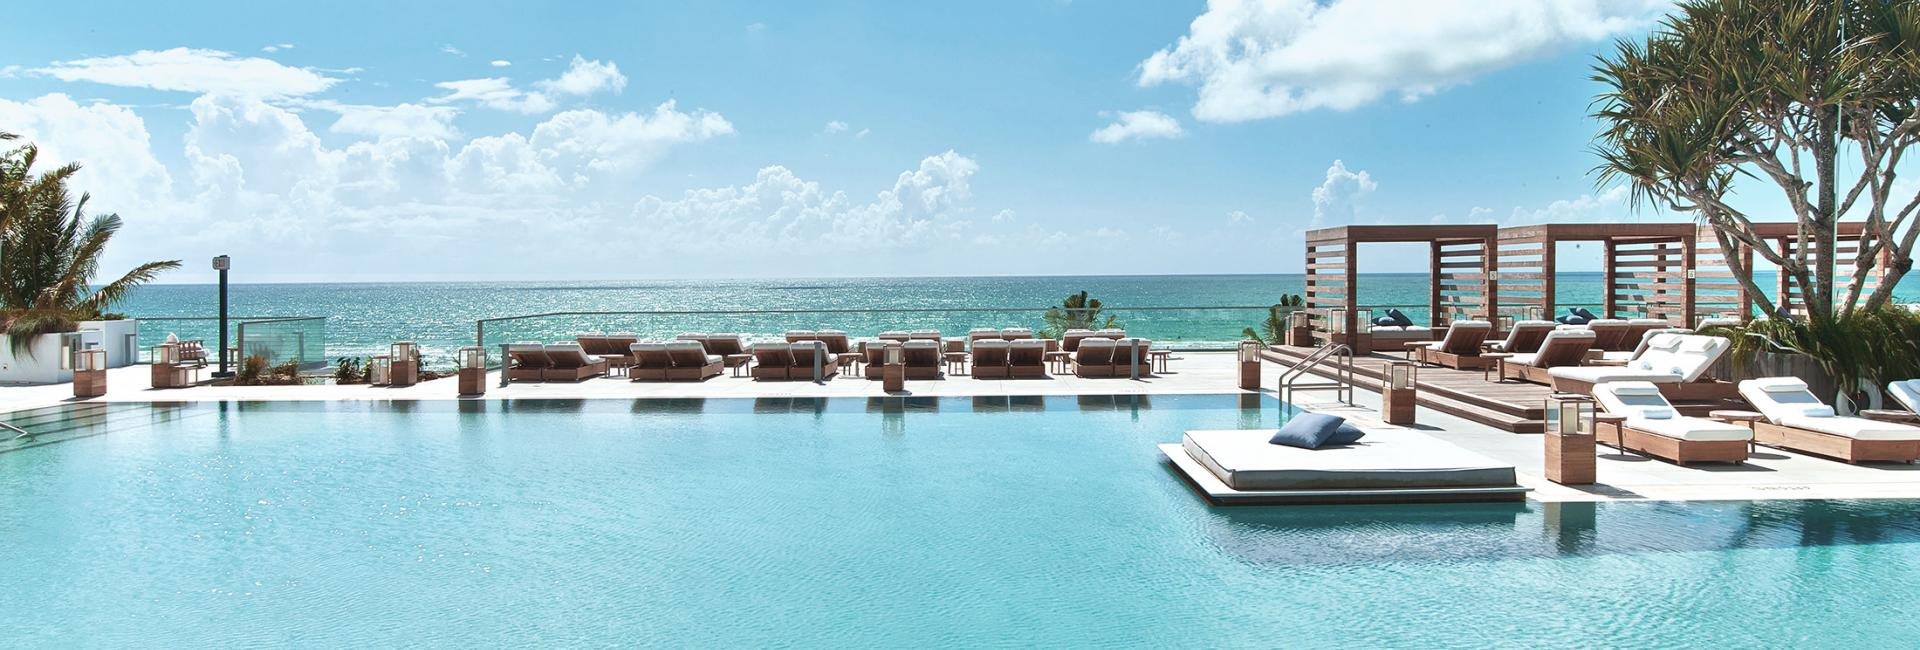 Pool at 1 hotel south beach